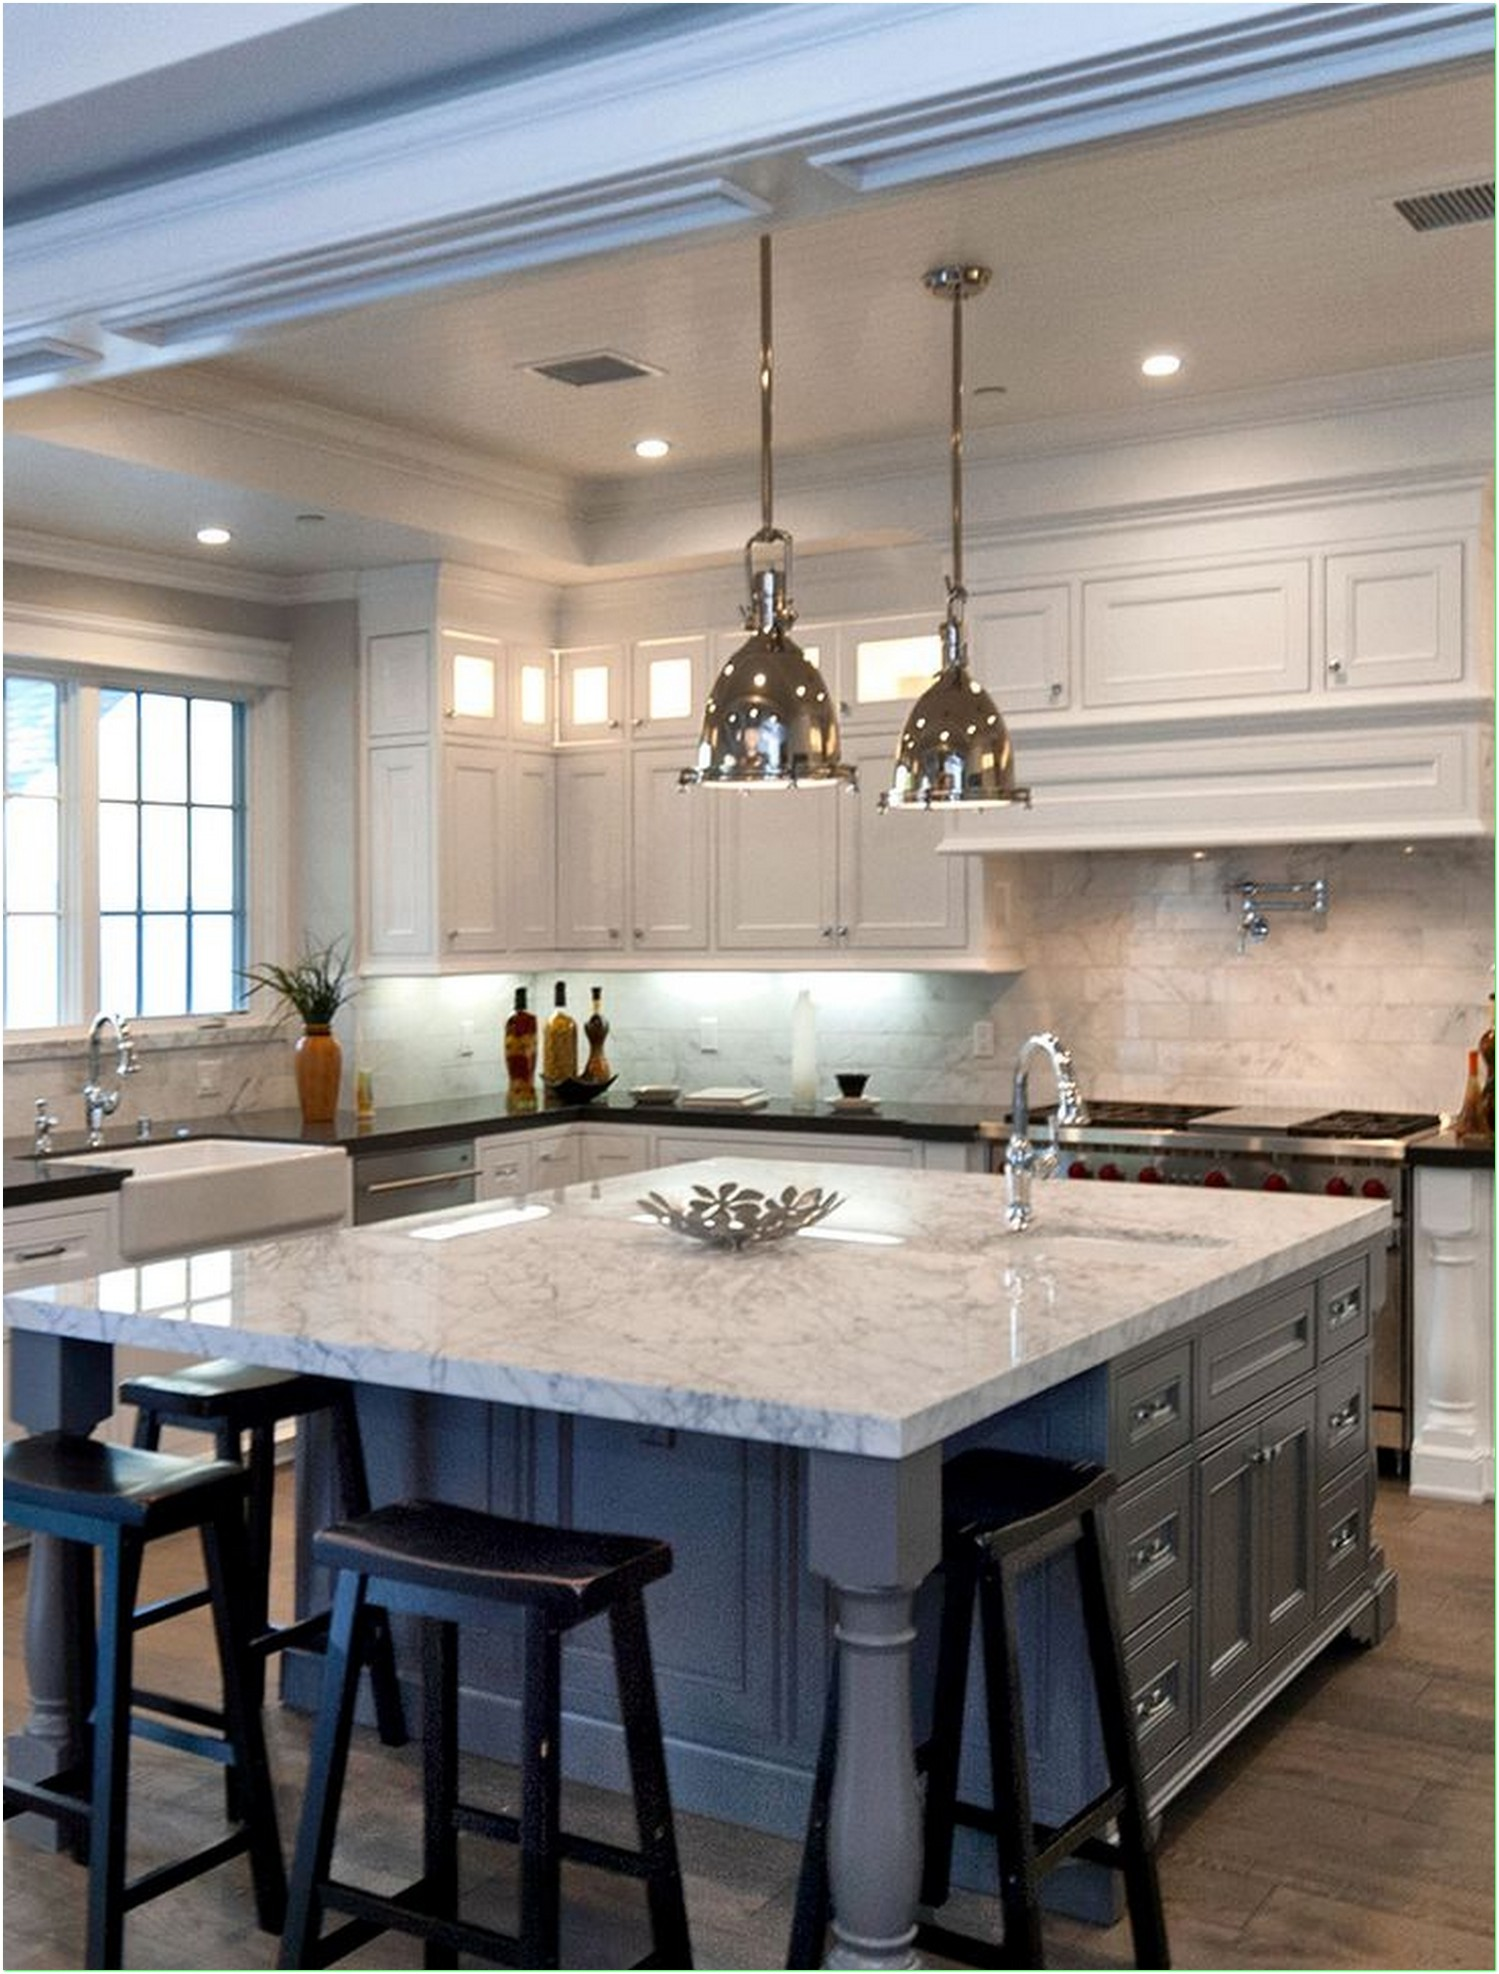 30 extraordinary kitchen design ideas to beautifully copy for the heart of your home 22